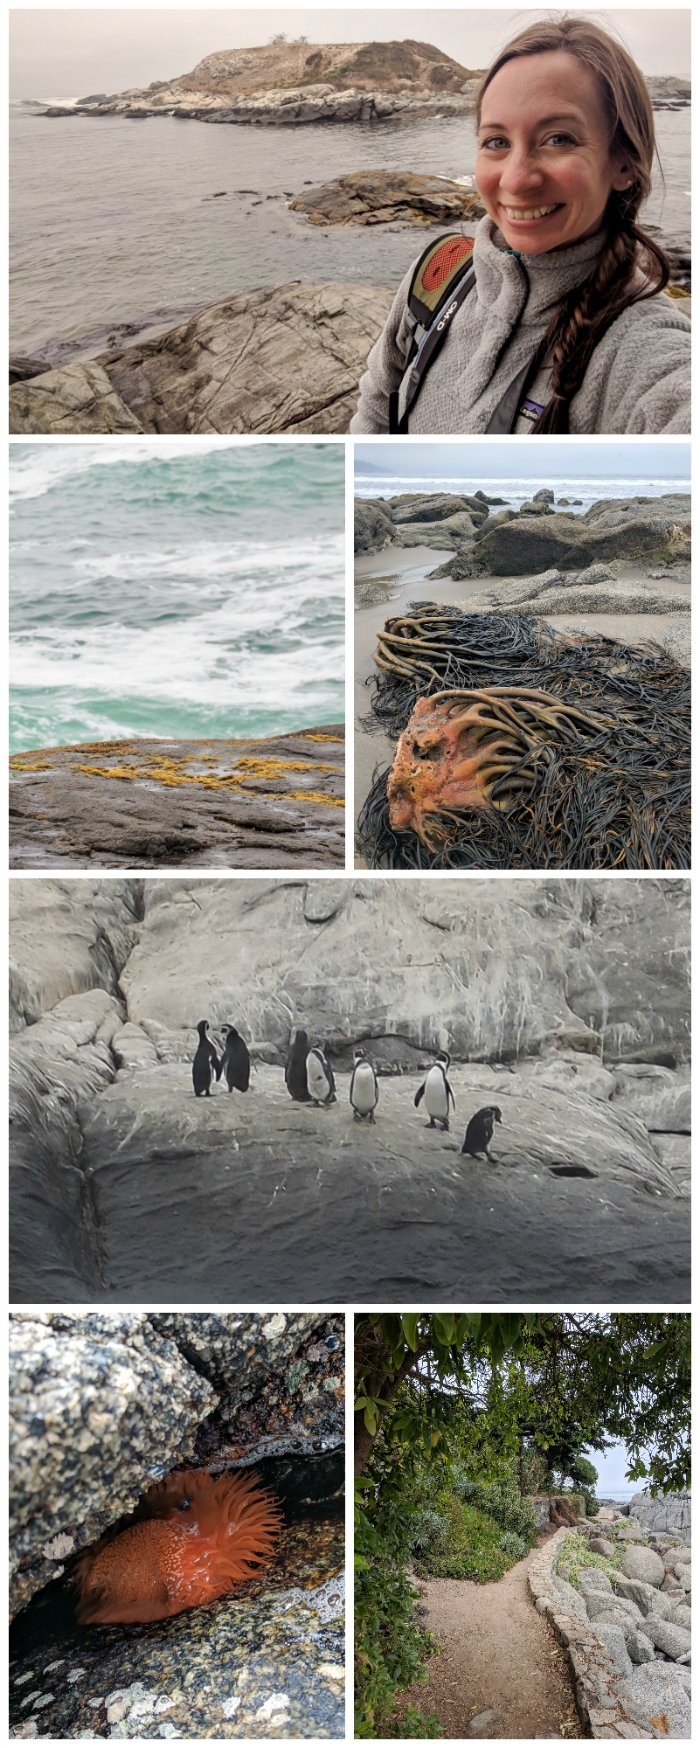 How to Spend One Week in Chile and Cover All the Bases   Spending the day with penguins on the Isla de Cachagua #chile #valparaiso #whattodoinchile #weekinchile #penguins #cachagua #beach